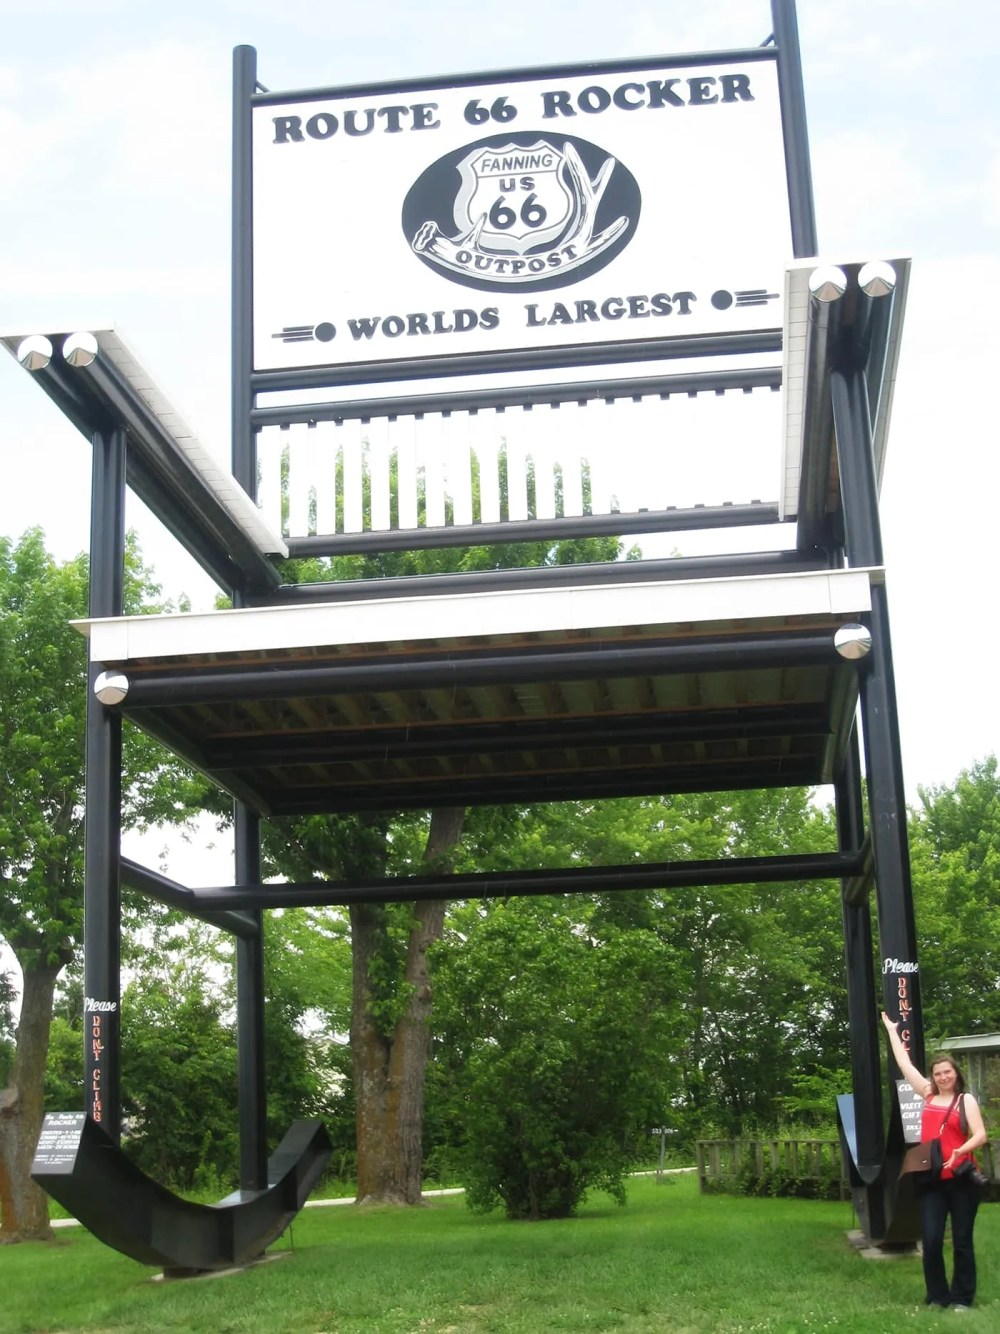 World's Largest Rocking Chair in Cuba, Missouri